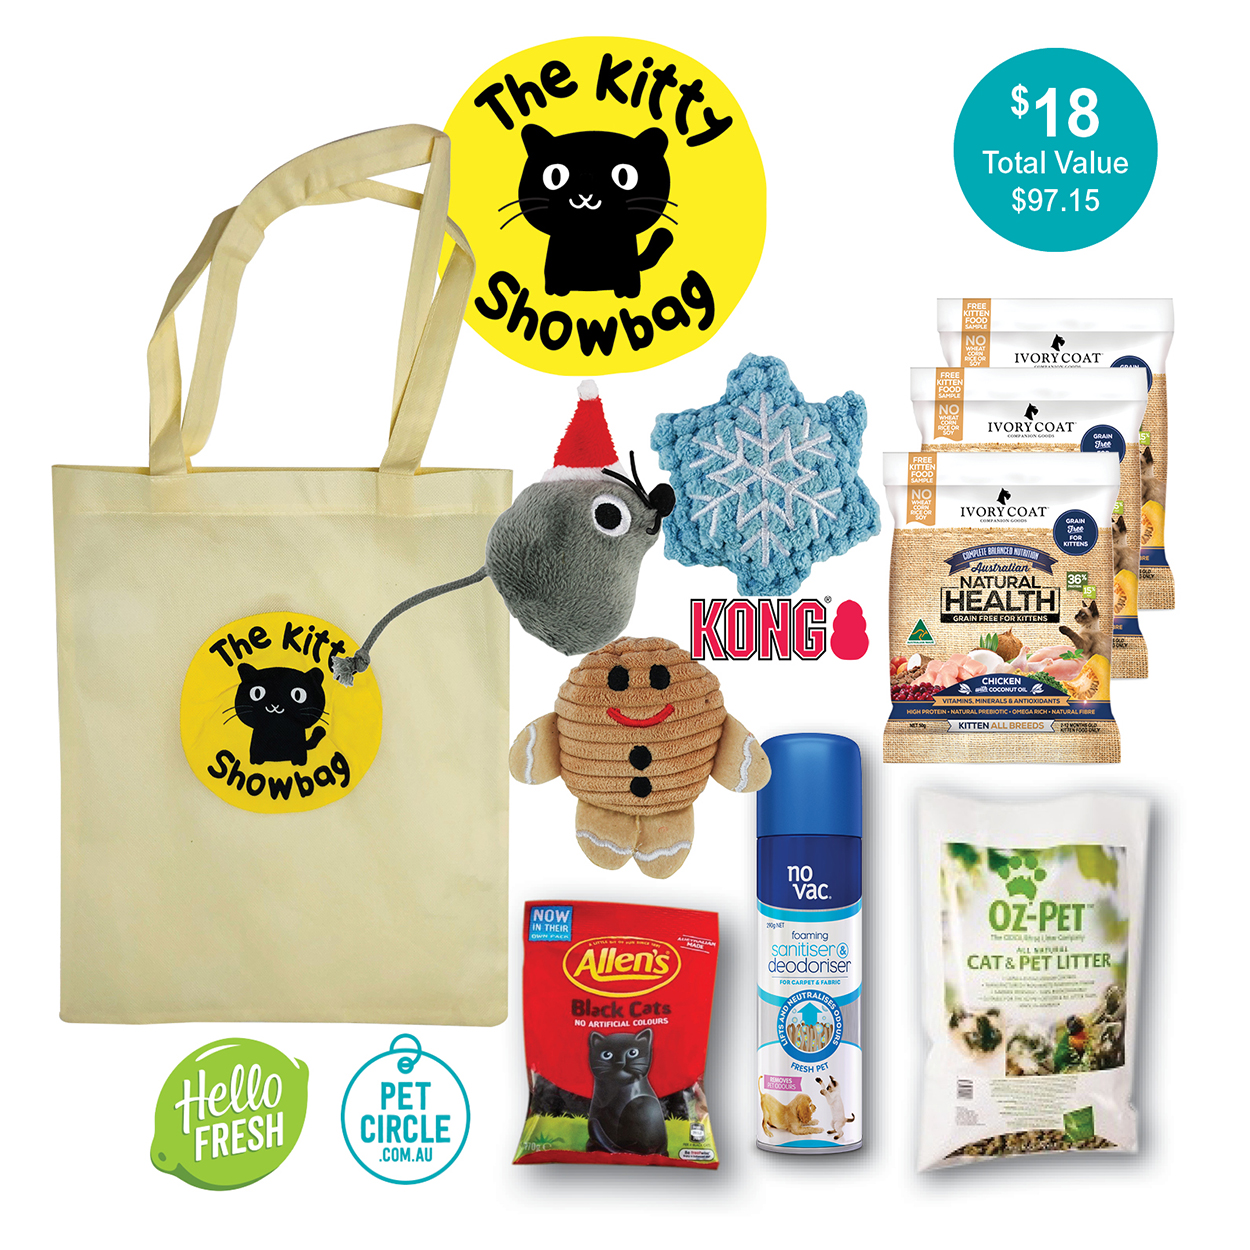 The Kitty Showbag